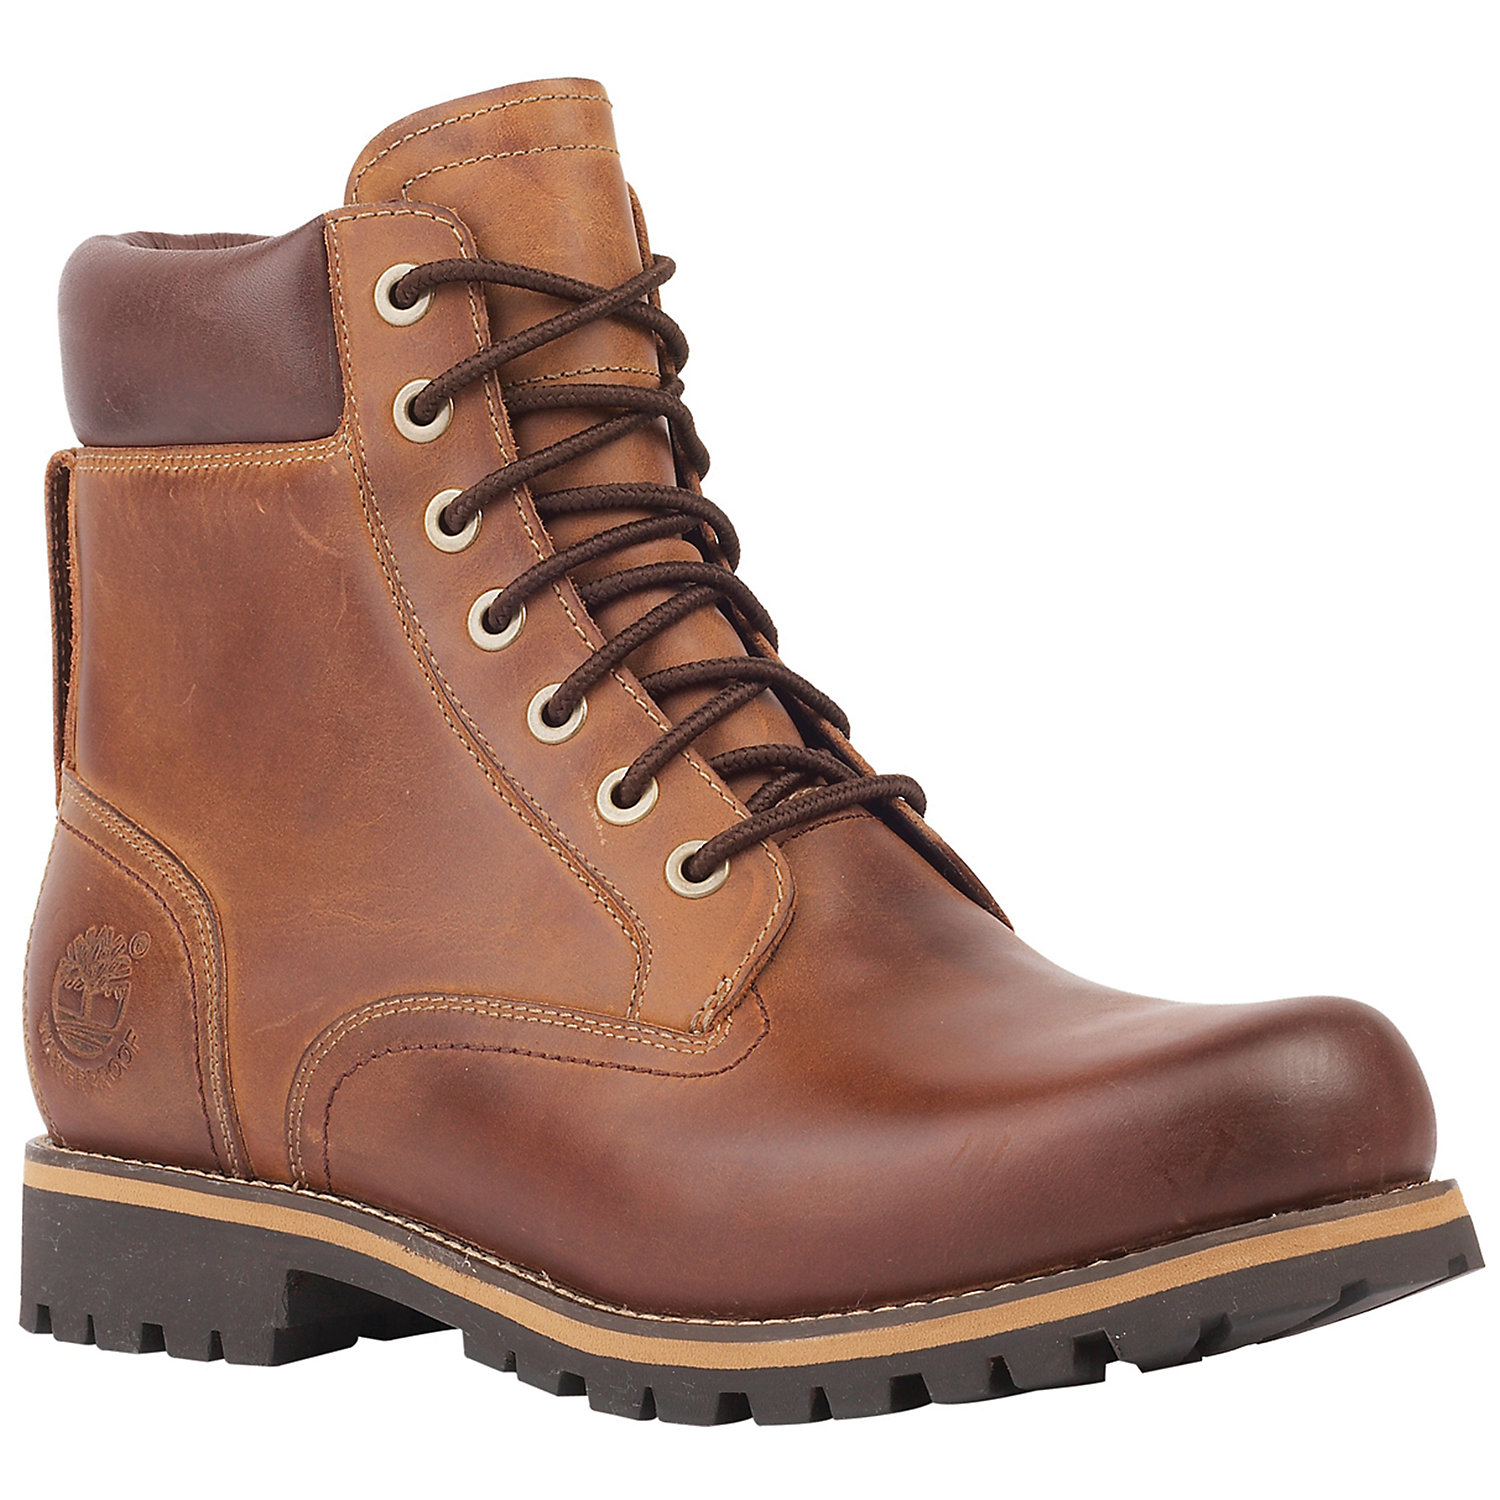 Experto Interminable mero  Timberland Men's Timberland Rugged 6 Inch Waterproof Boot - Moosejaw